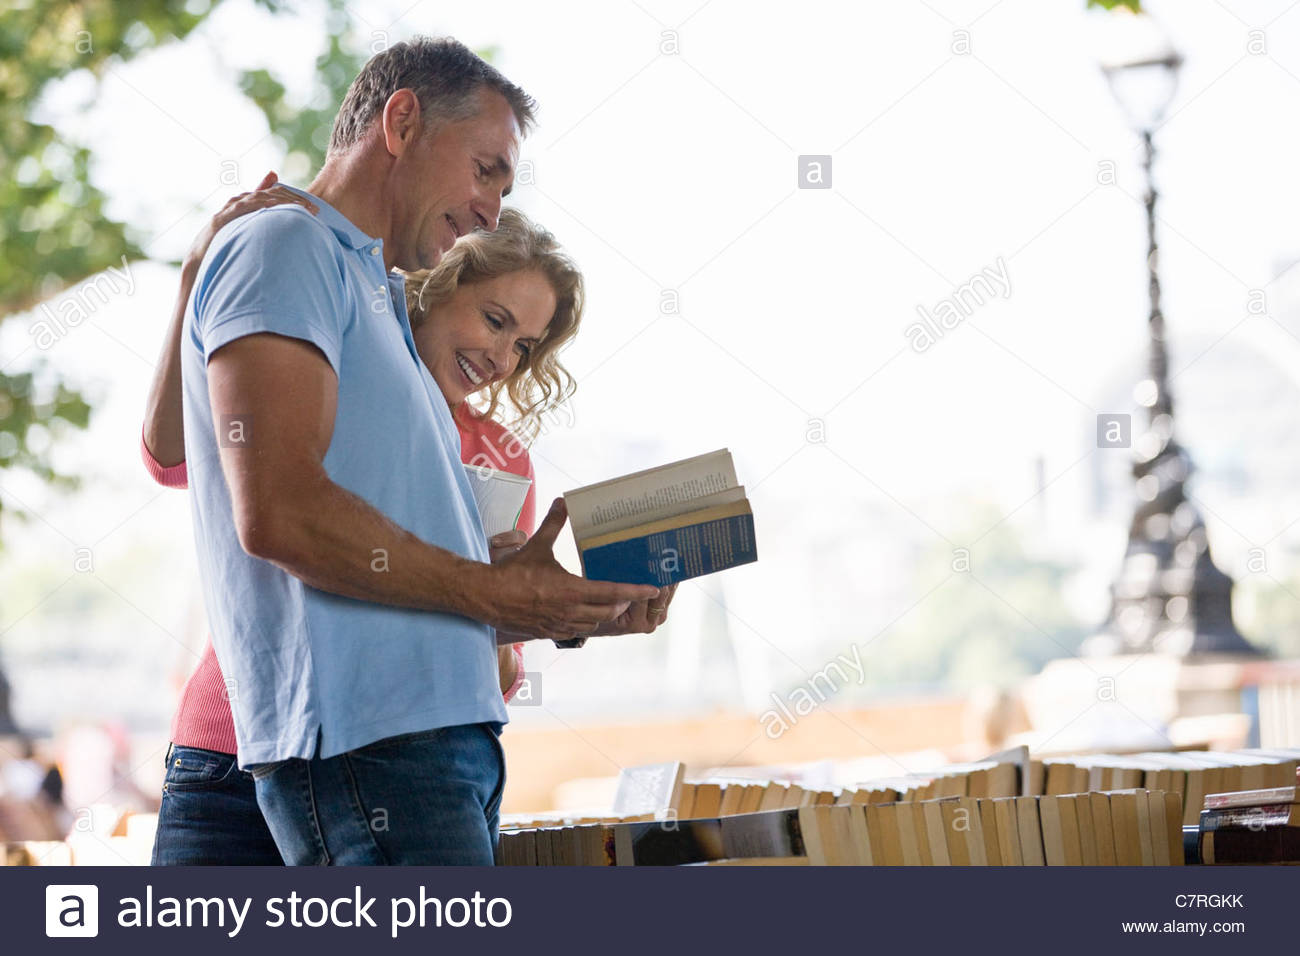 A middle-aged couple looking at books at a book stall - Stock Image